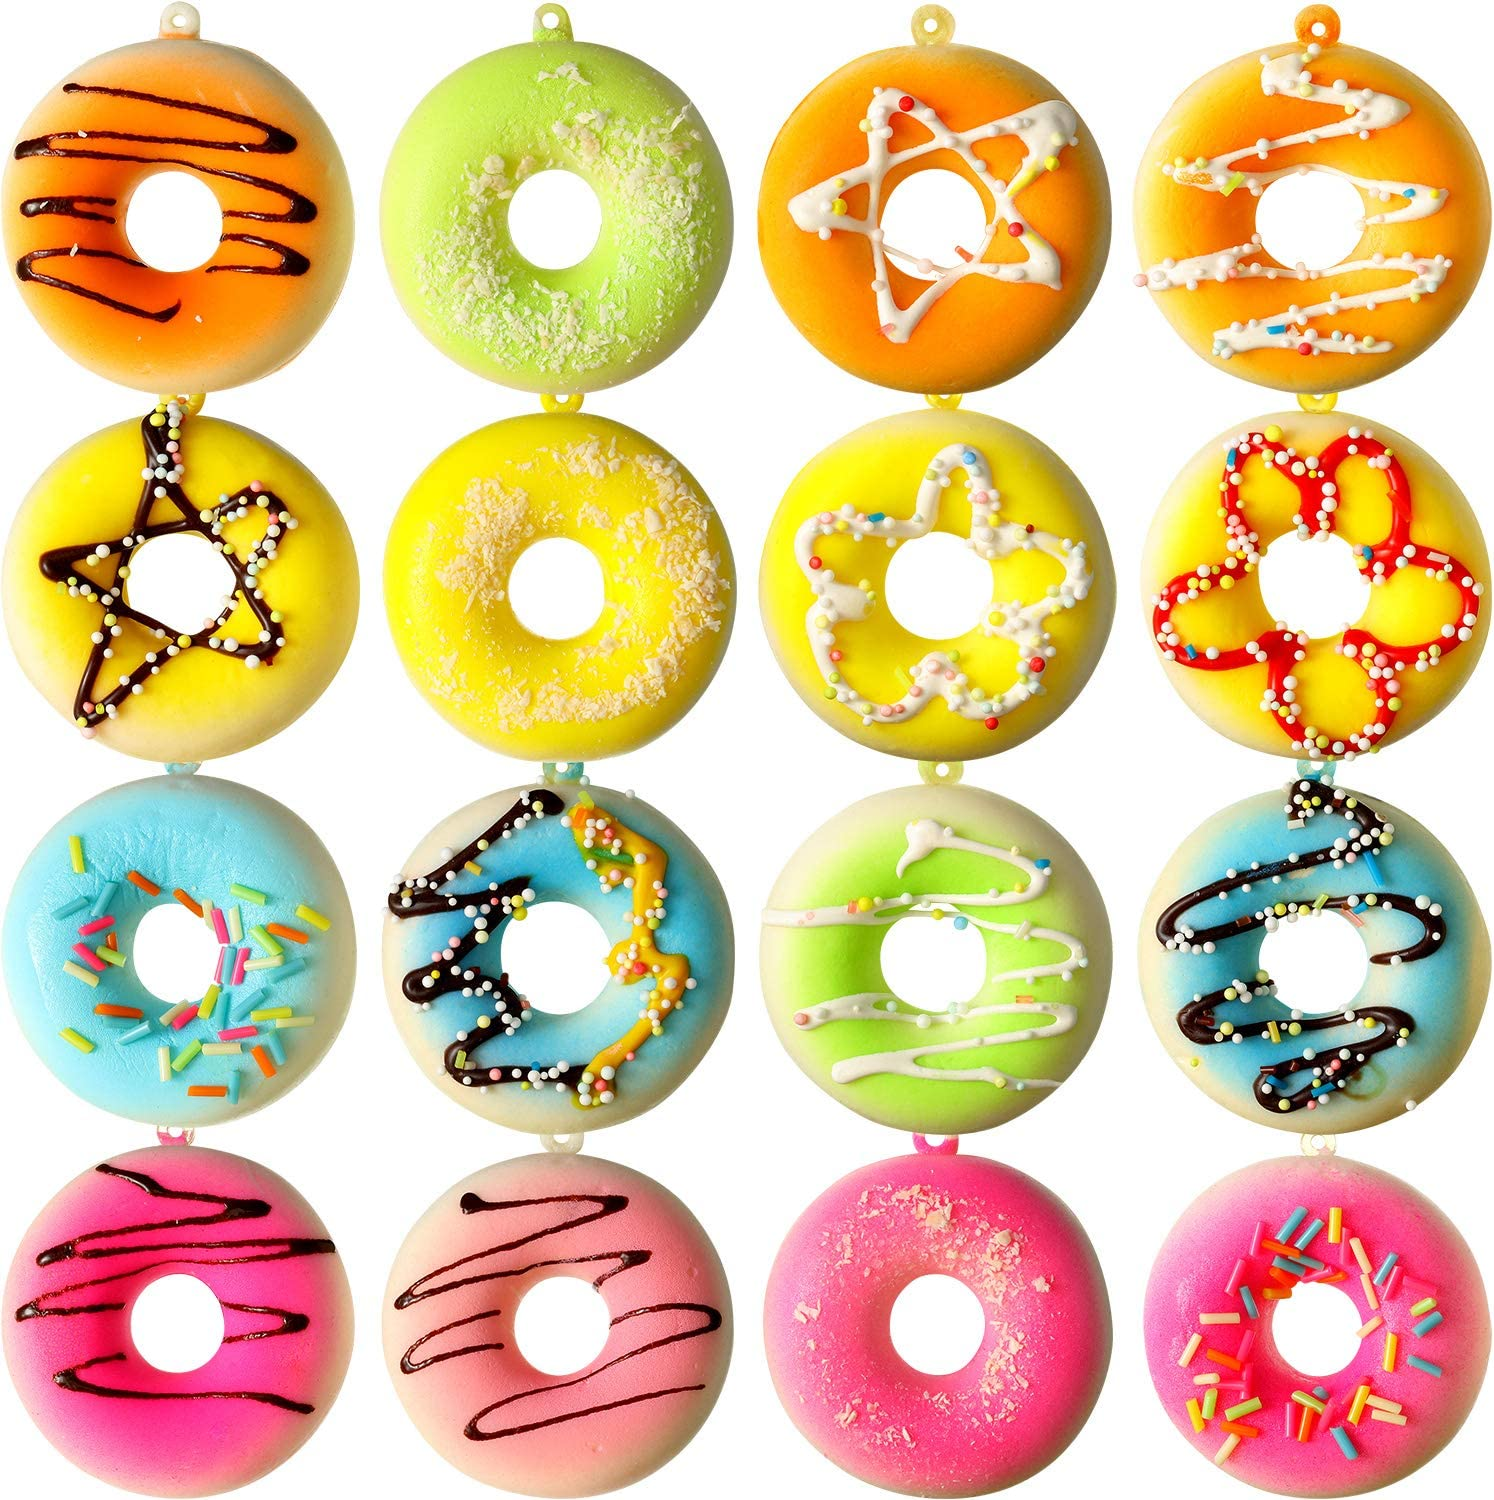 16 Pieces Fake Donuts Simulation Donuts Artificial Doughnuts Dessert Cake Party Favors Decoration Faux Donuts Food Props in Various Styles, 2 Inch